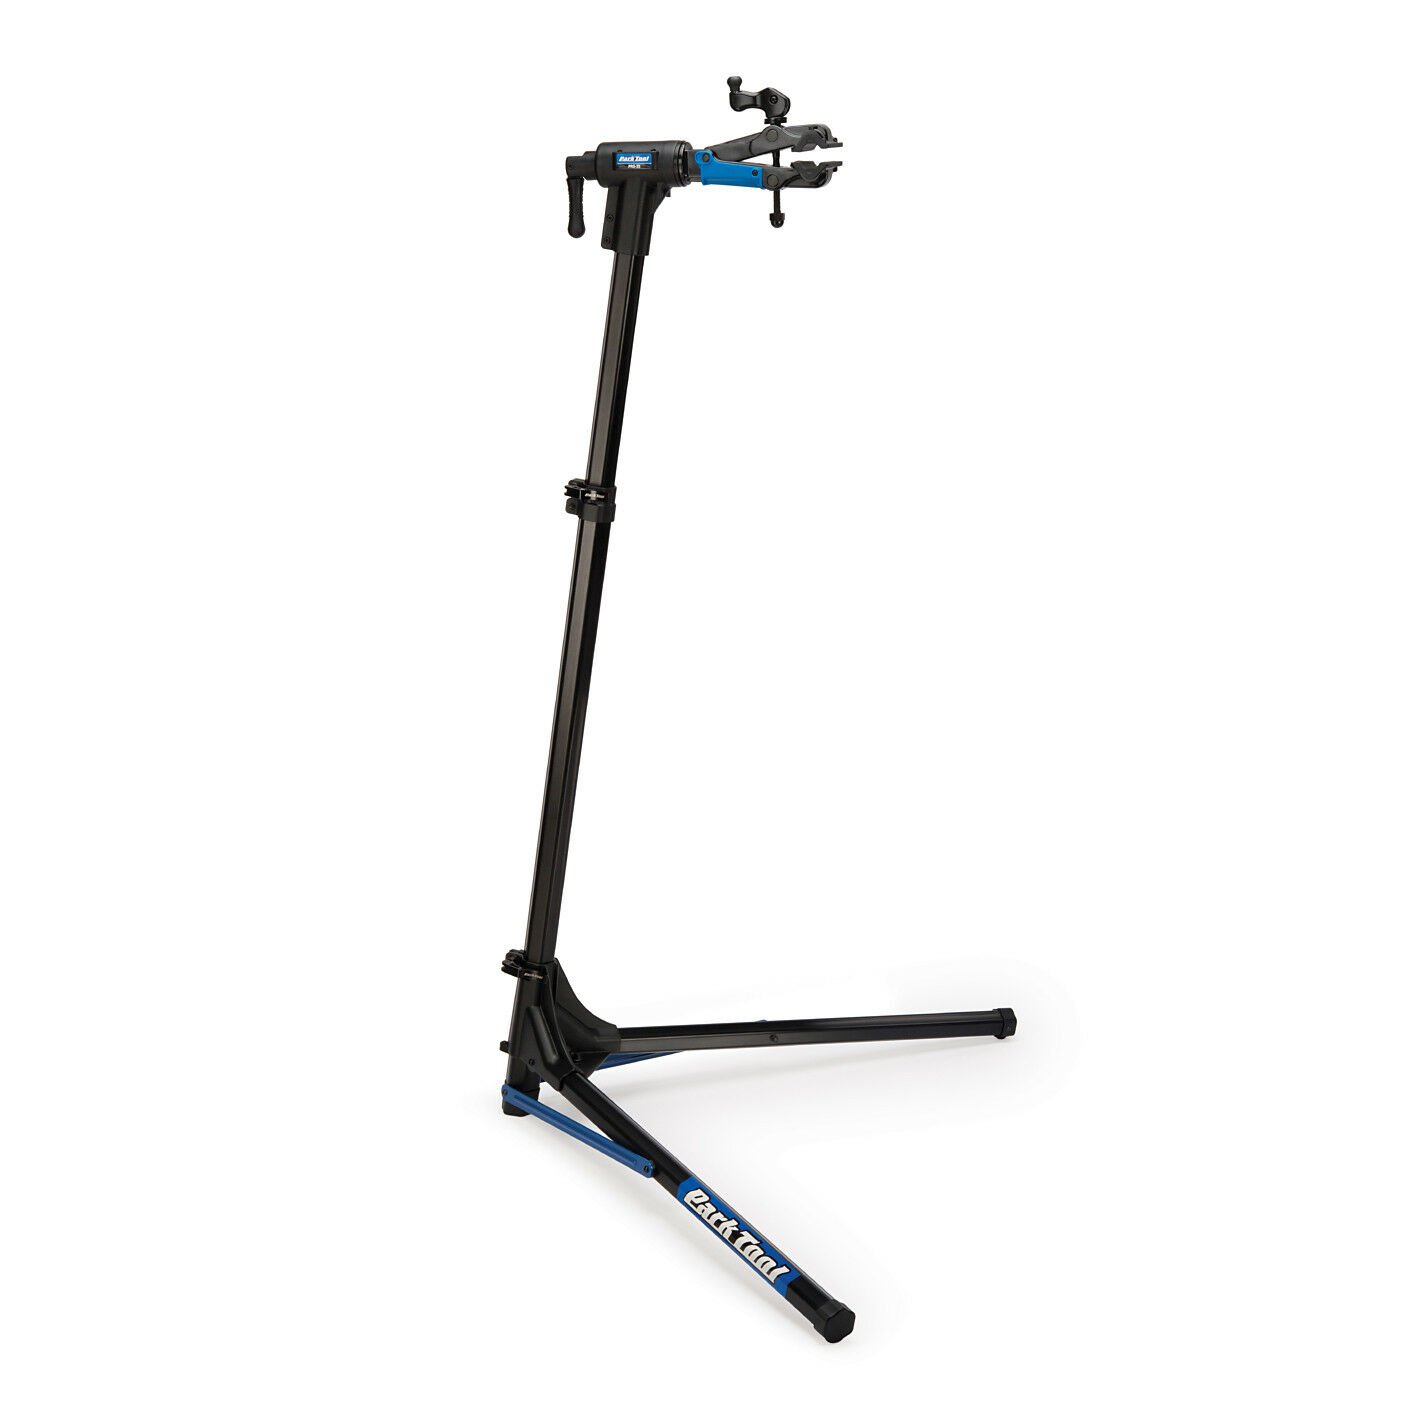 Park Portable Tool PRS-25 Team Issue Portable Park Repair Stand f6863f